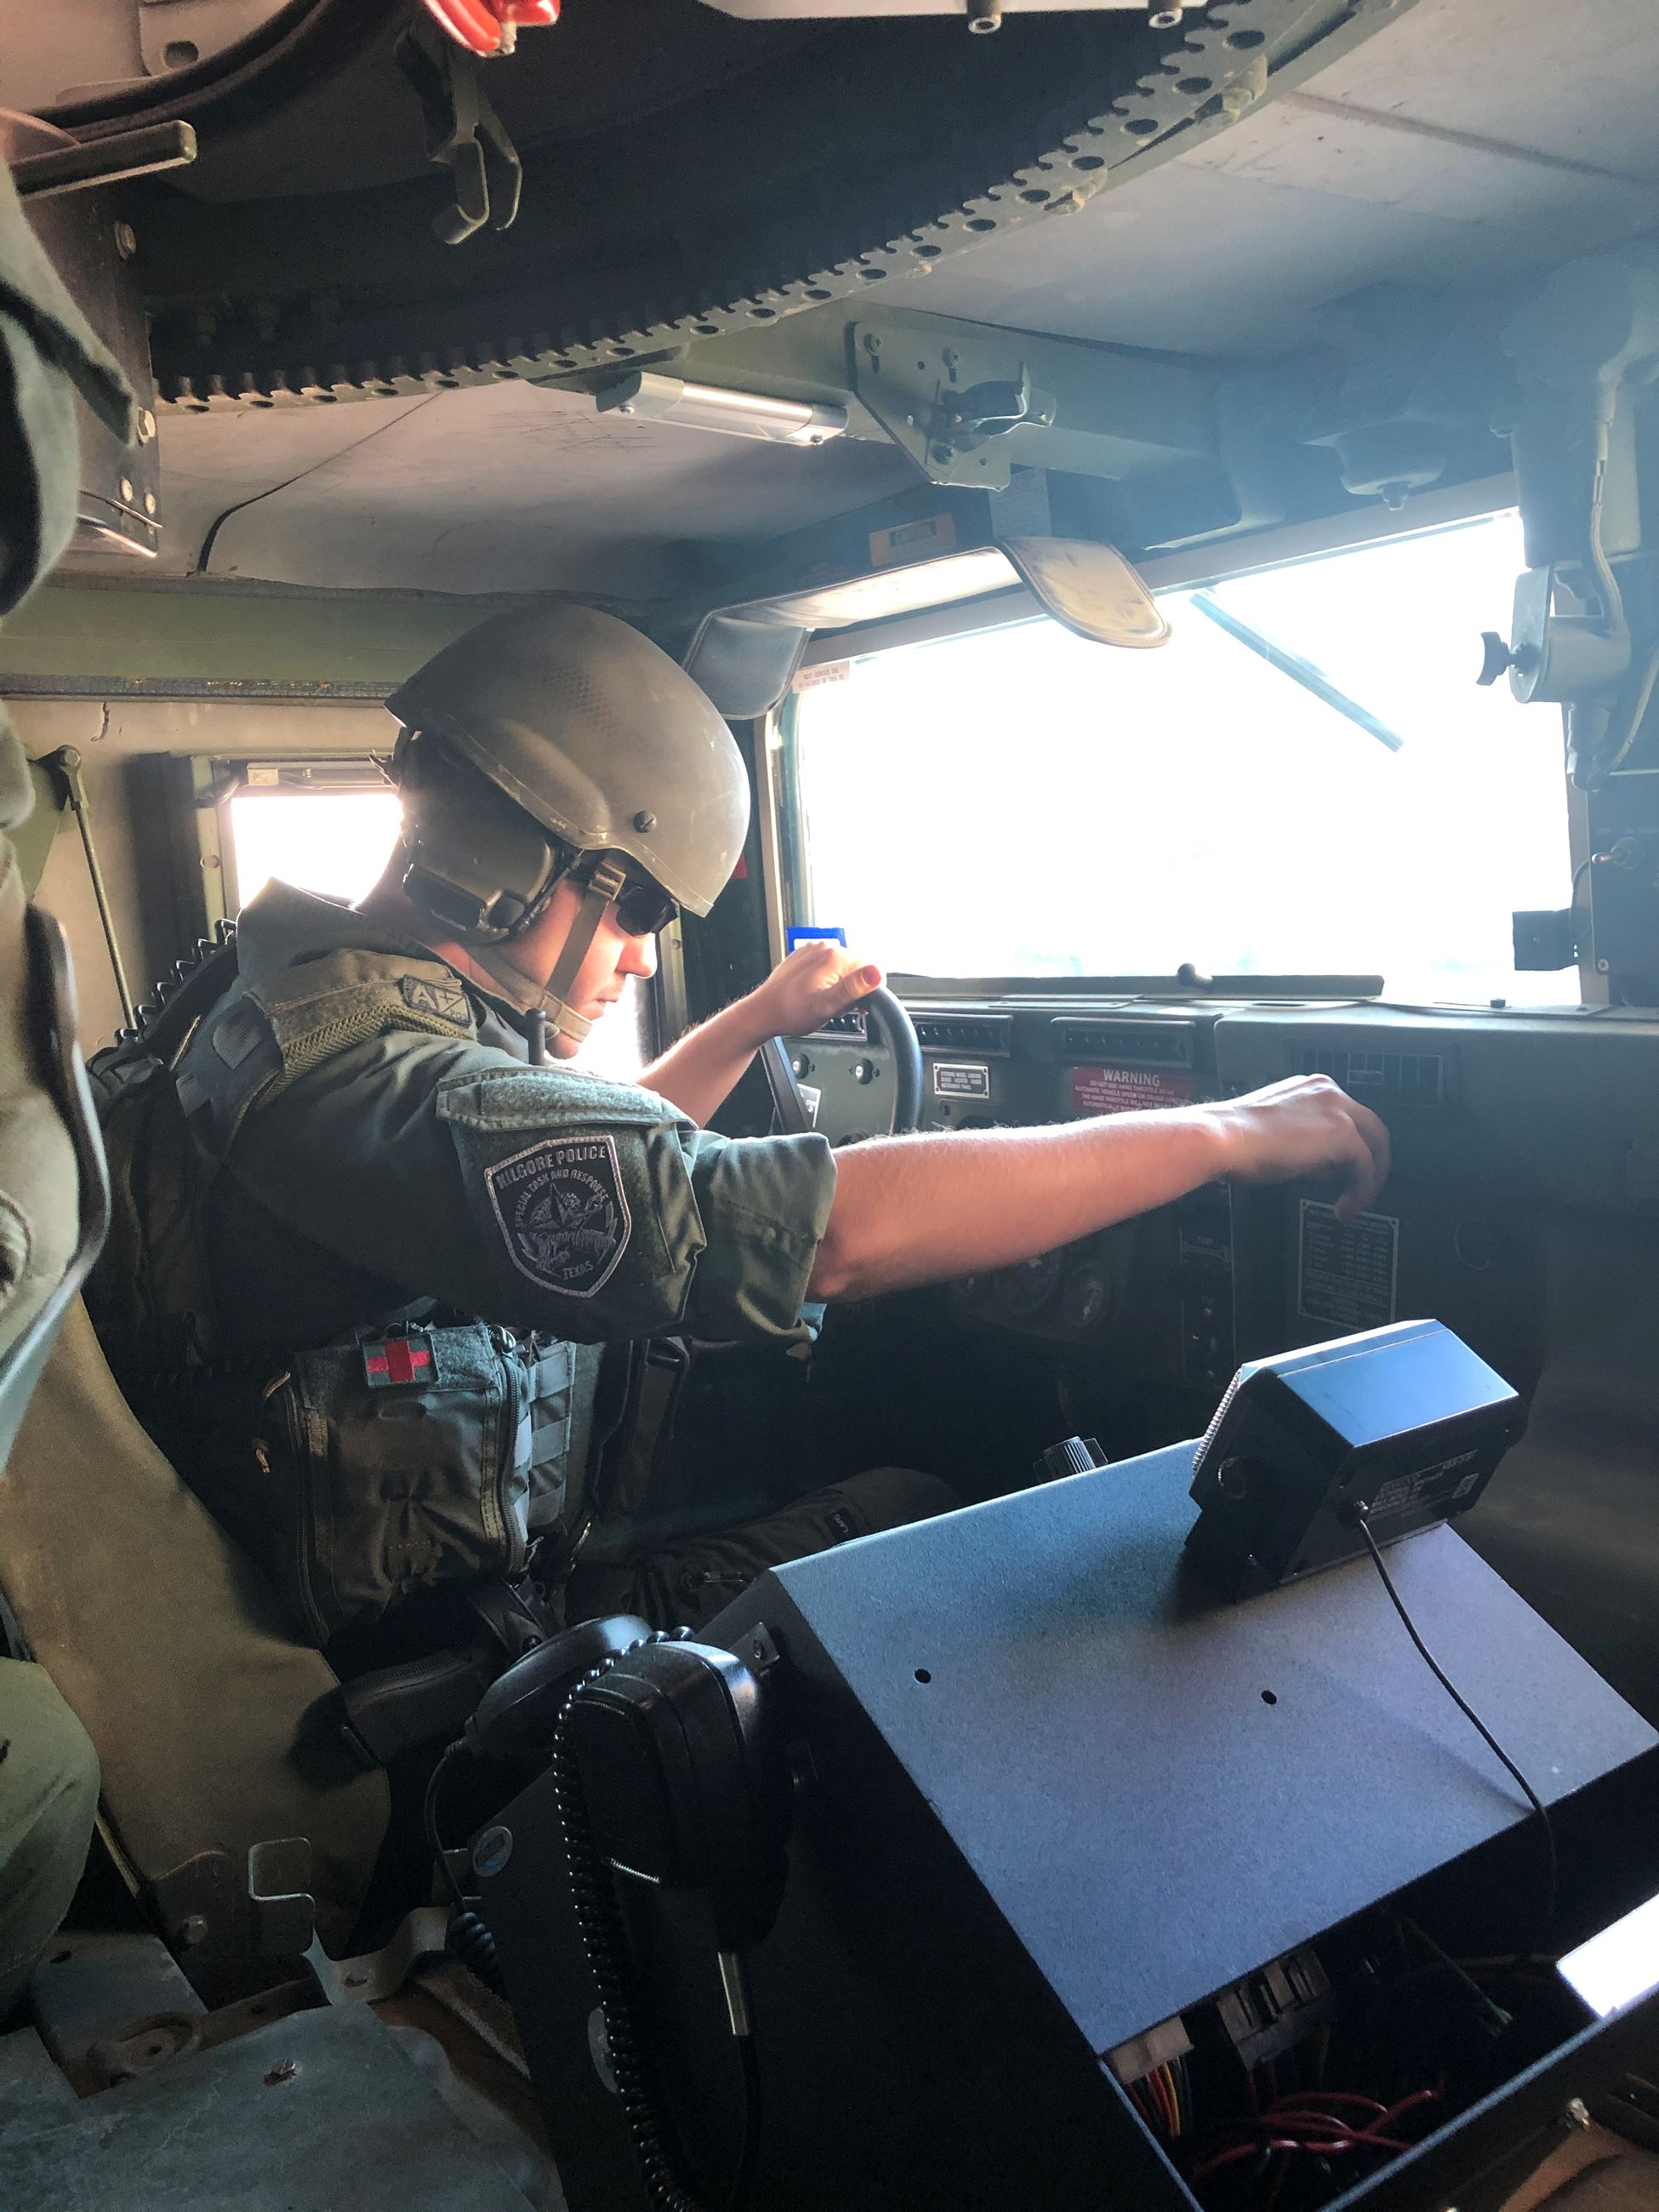 Cpl Sims driving the special operations and rescue humvee